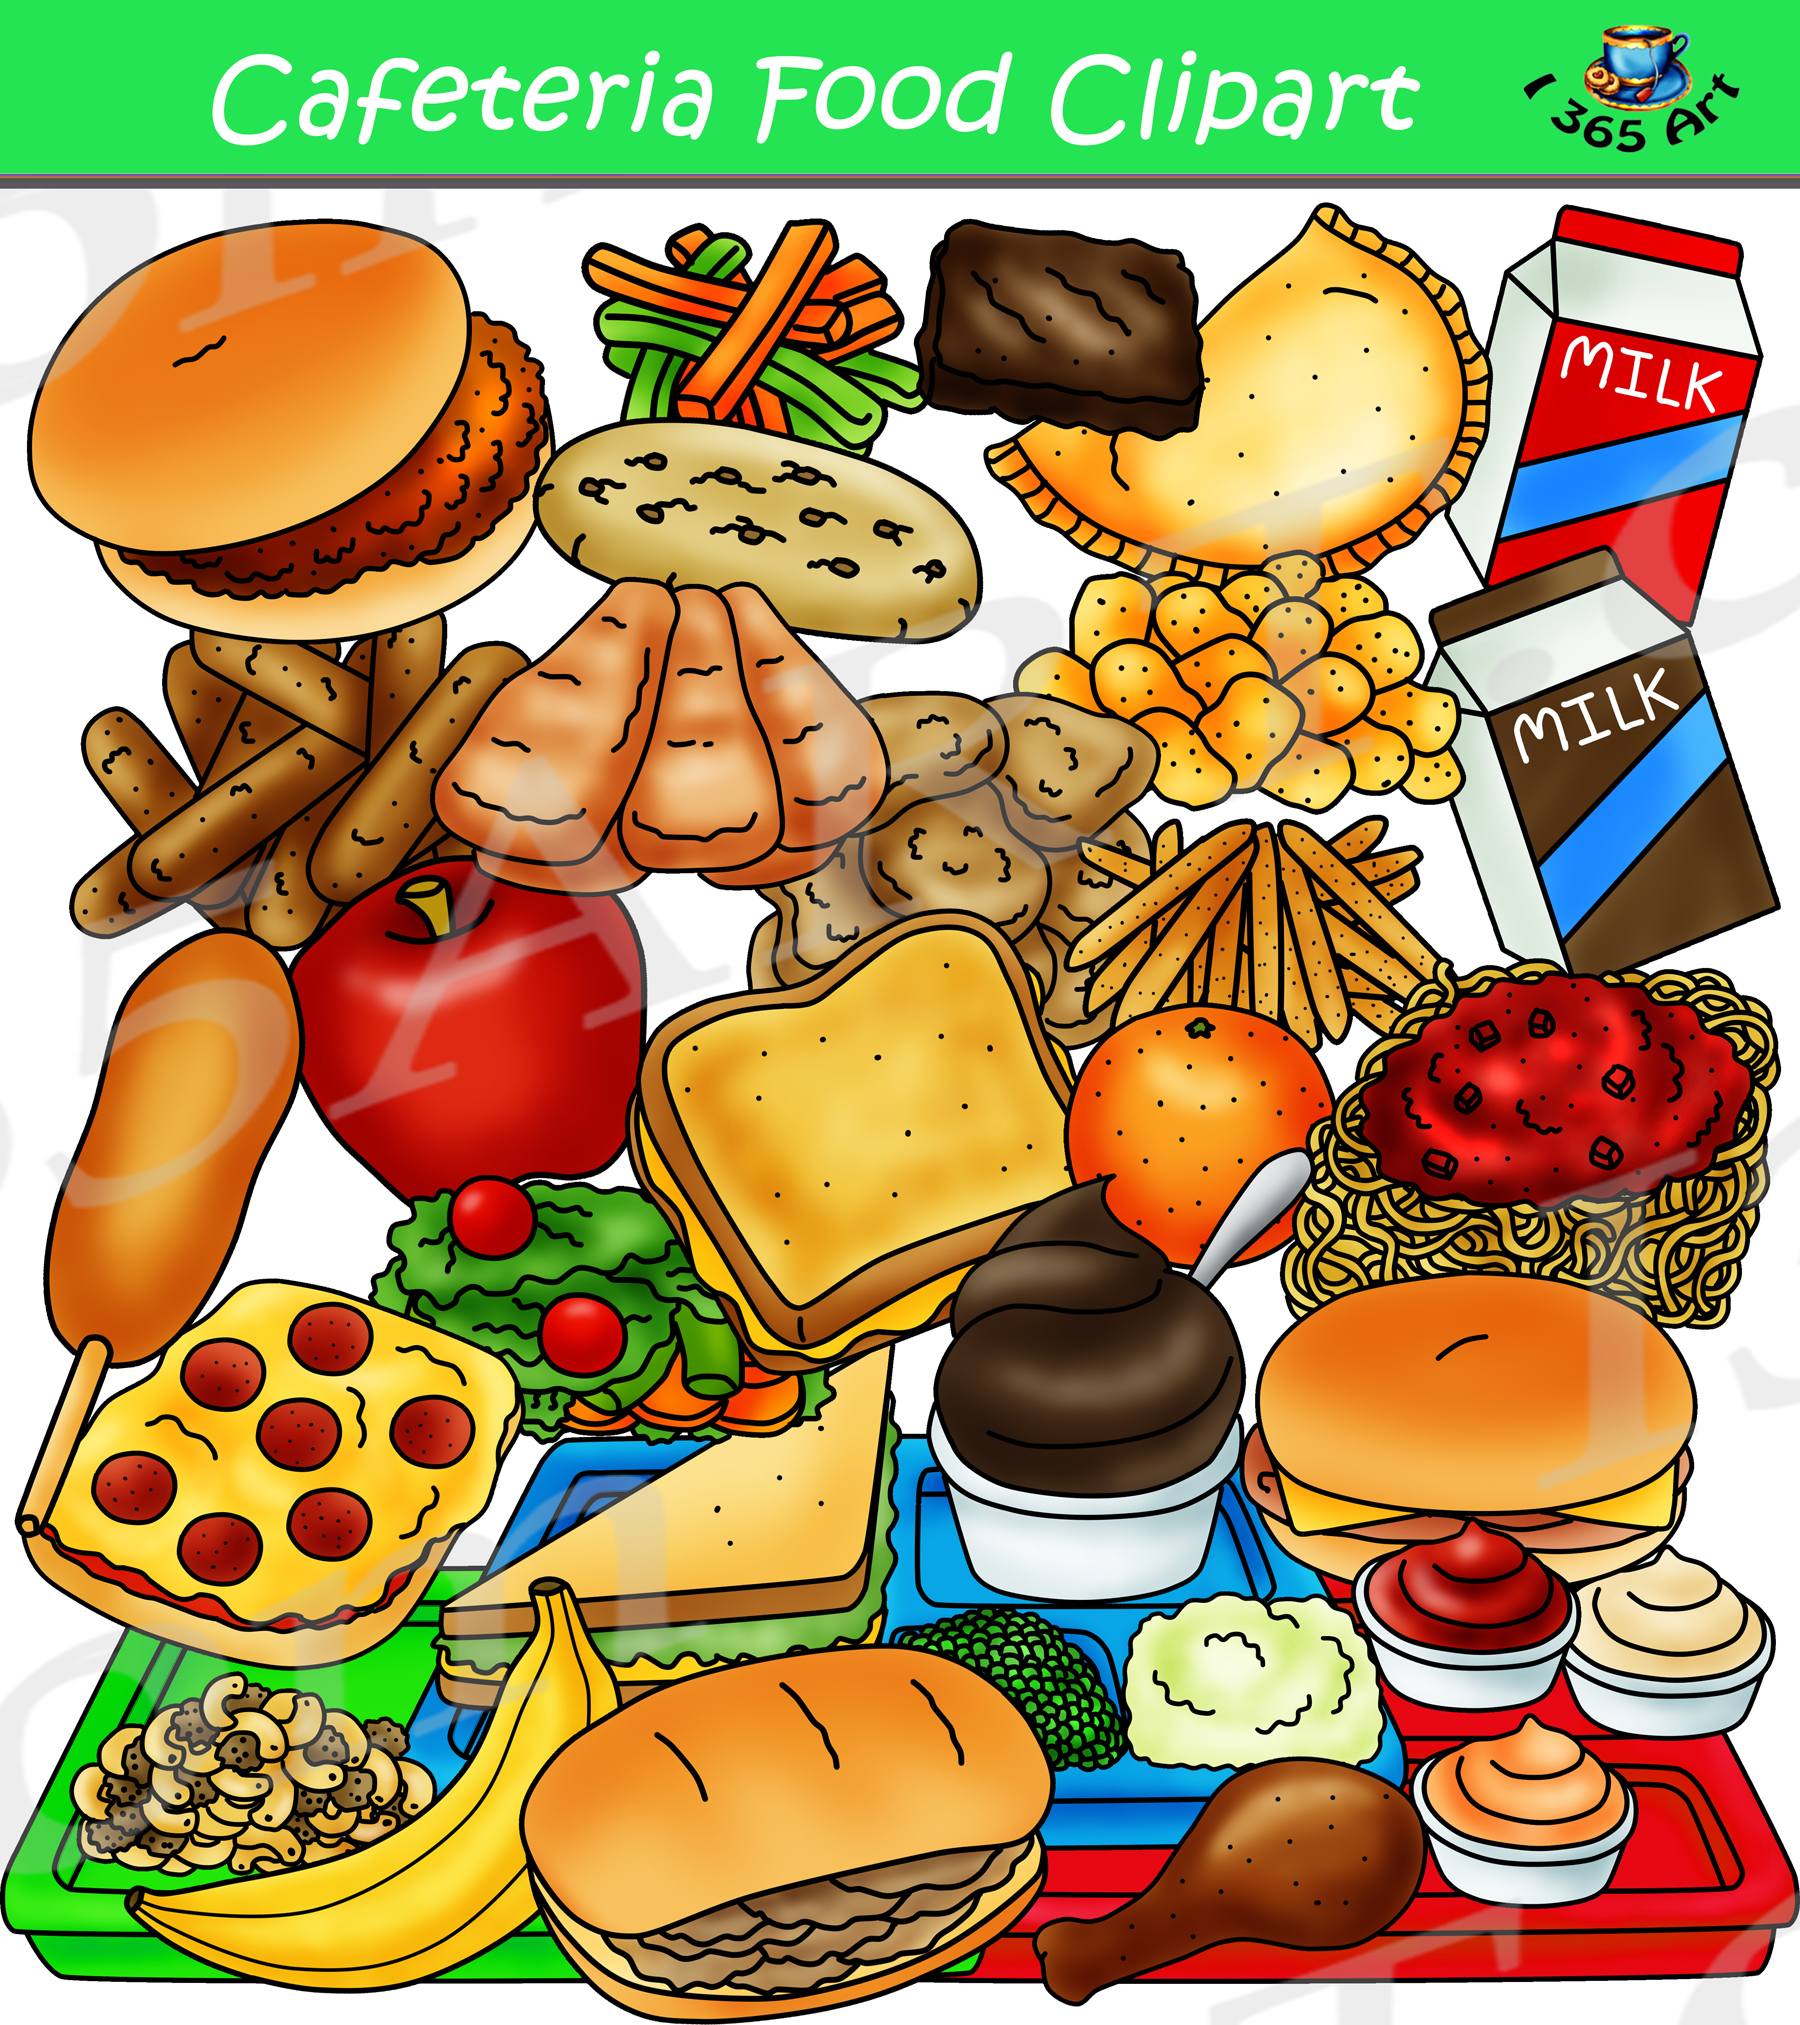 Cafeteria clipart school lunch tray. Food graphics set build